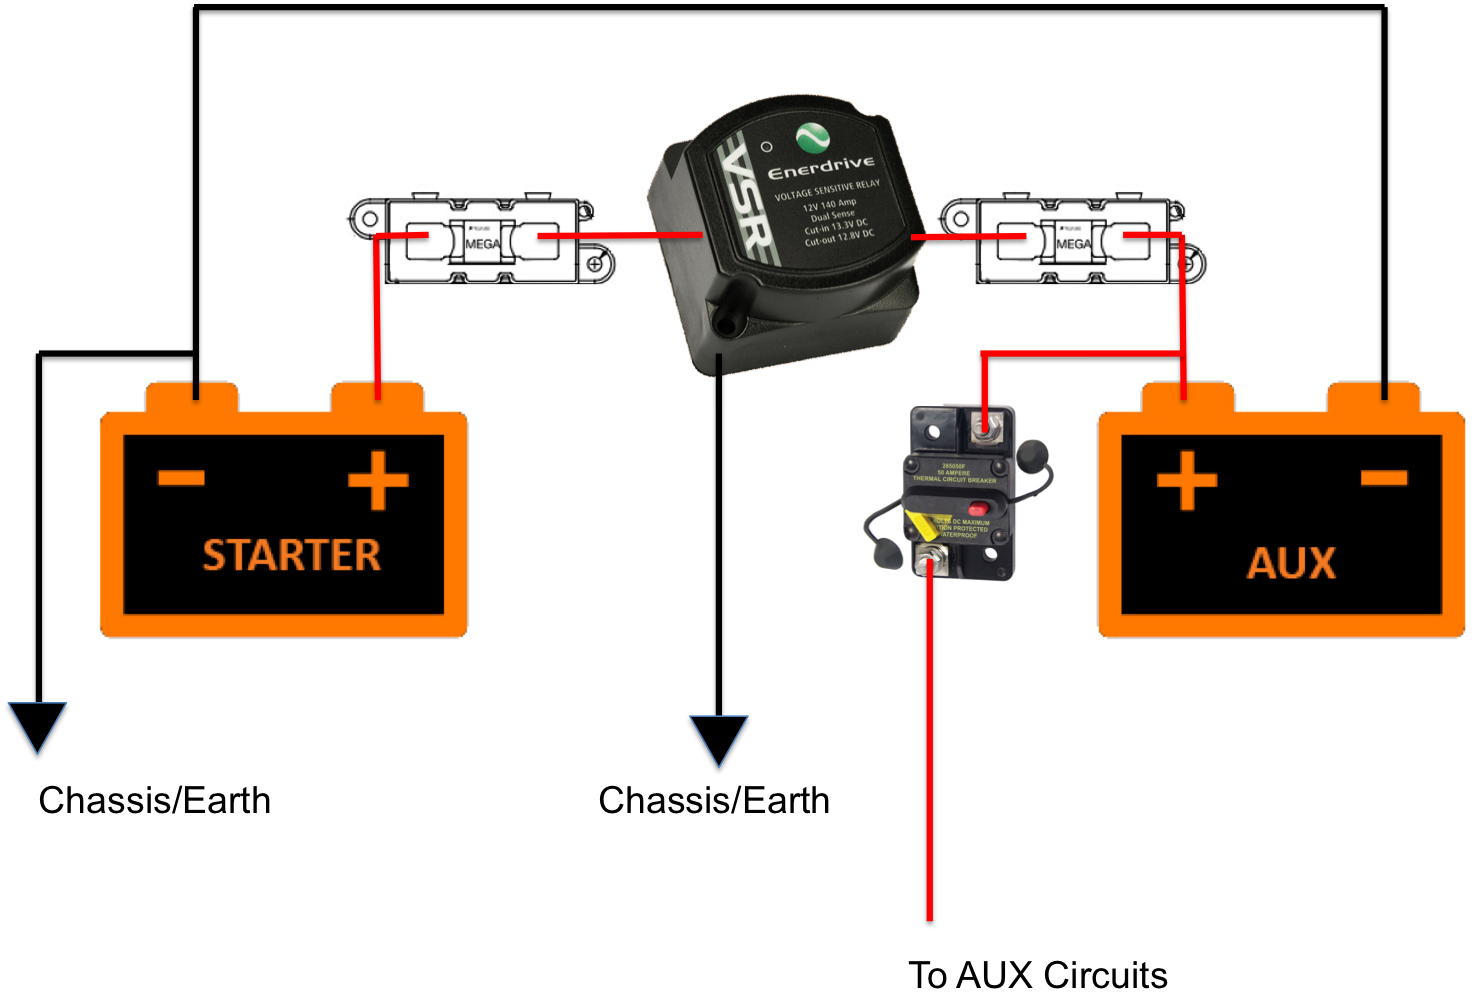 EnerderriveMegafuseBreaker install guides solid kit vsr wiring diagram at nearapp.co